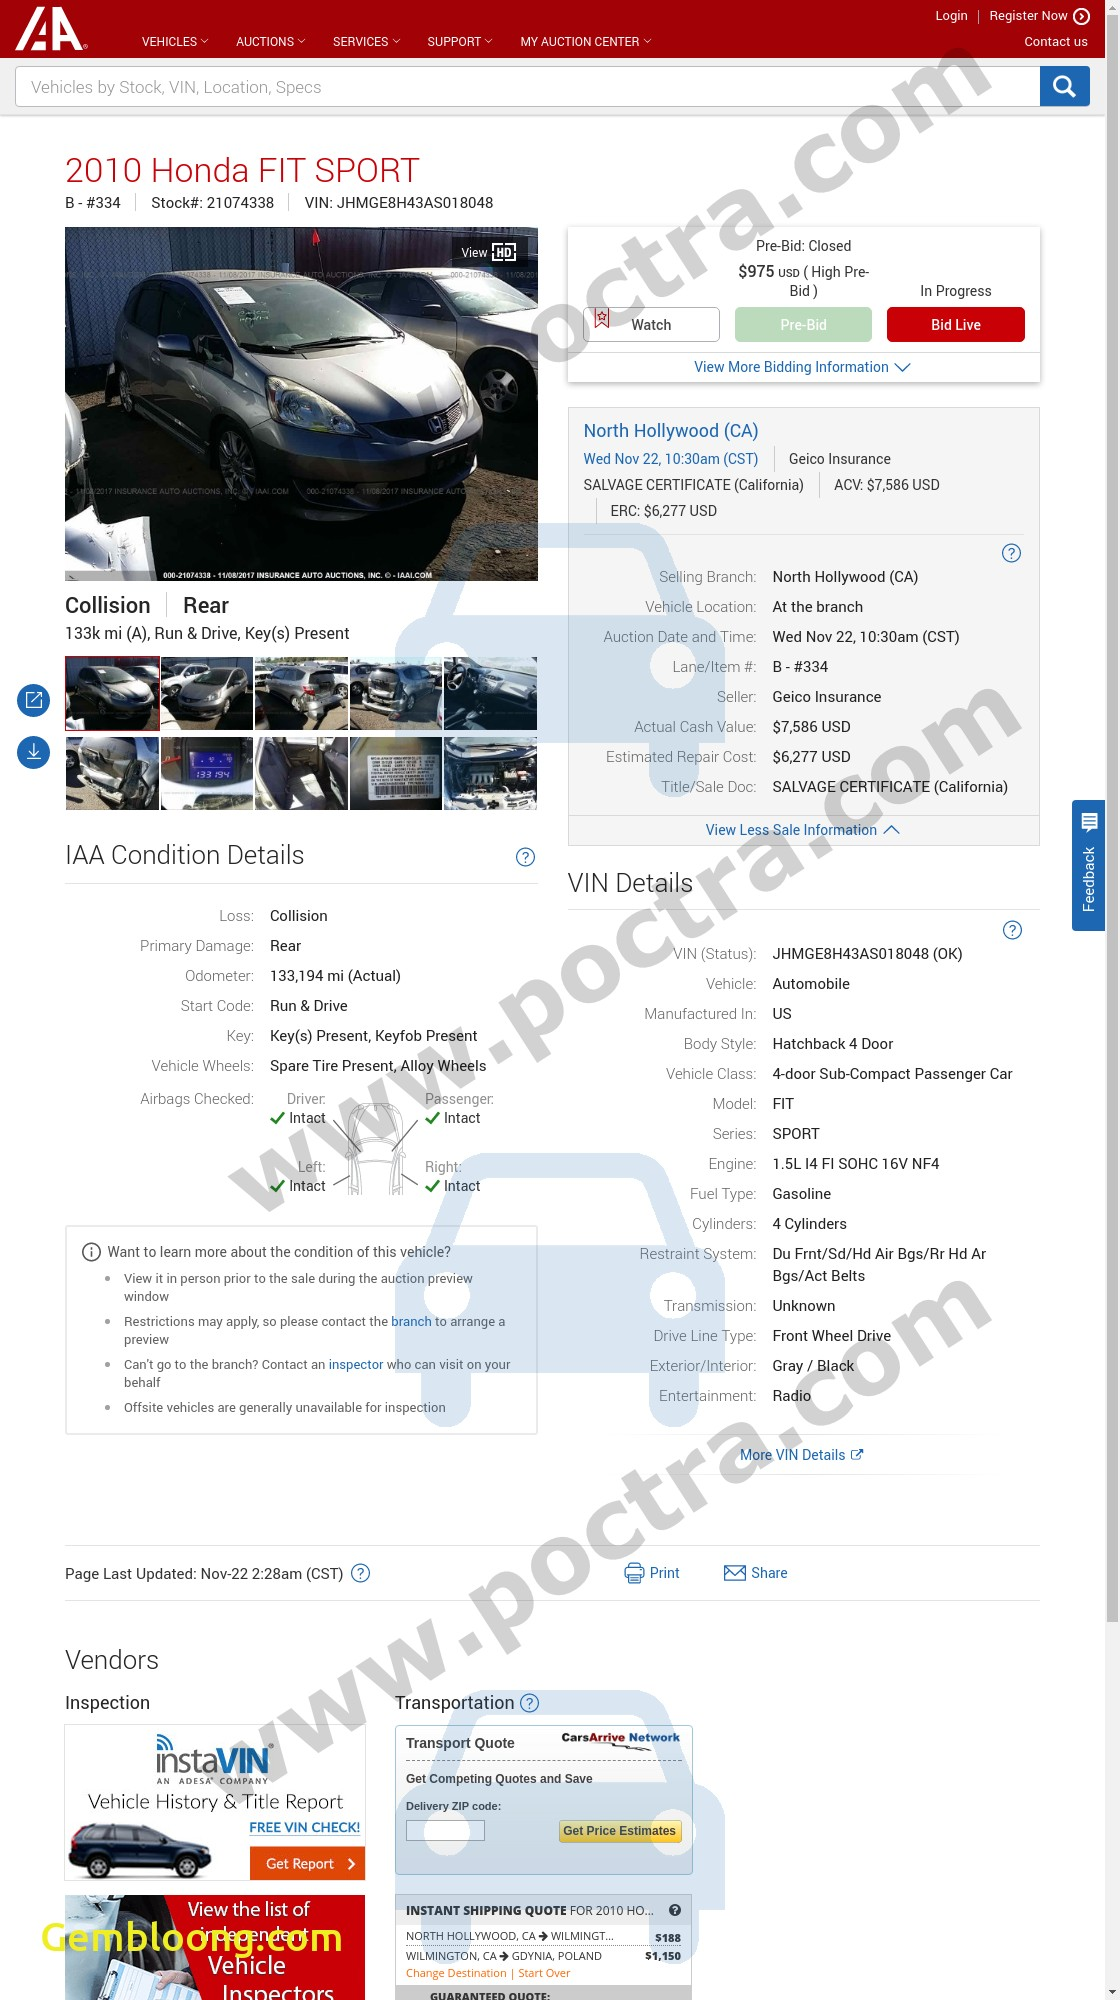 Free Vehicle History Report Luxury Jhmge8h43as 2010 Honda Fit Sport Price Poctra